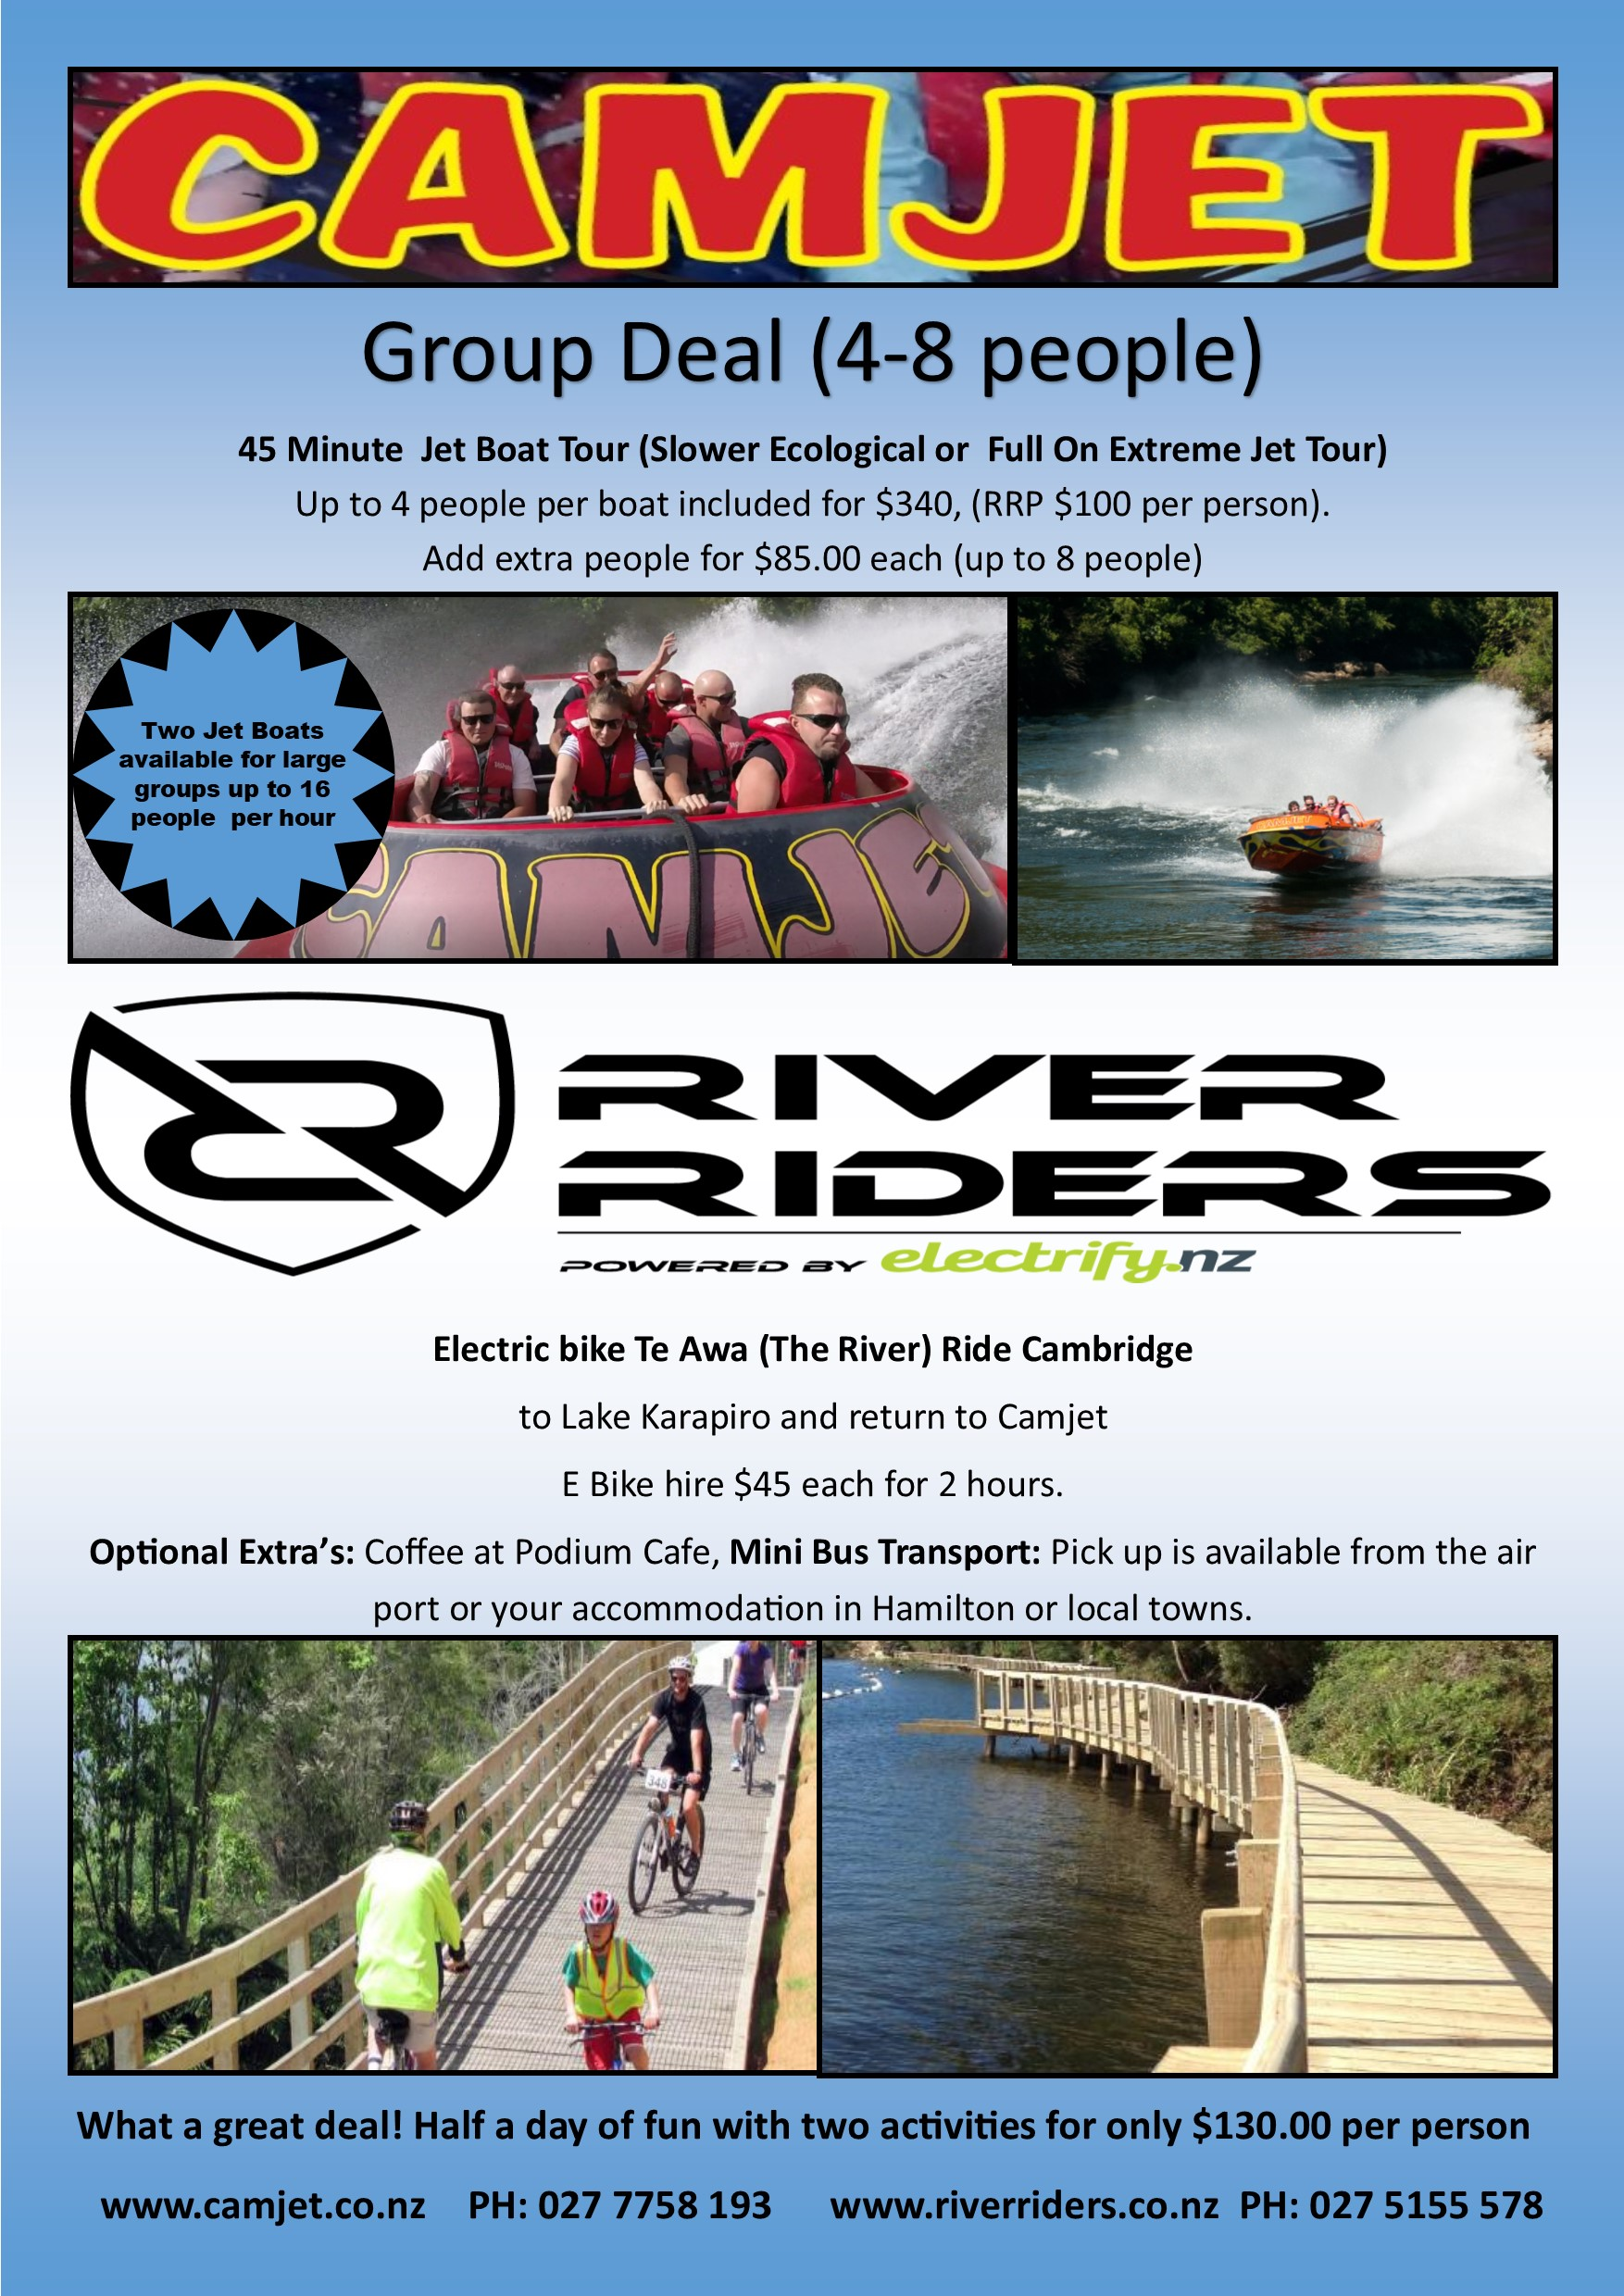 Things to do in Cambridge- 45 minute jet boat tour and 2 hour e-bike hire